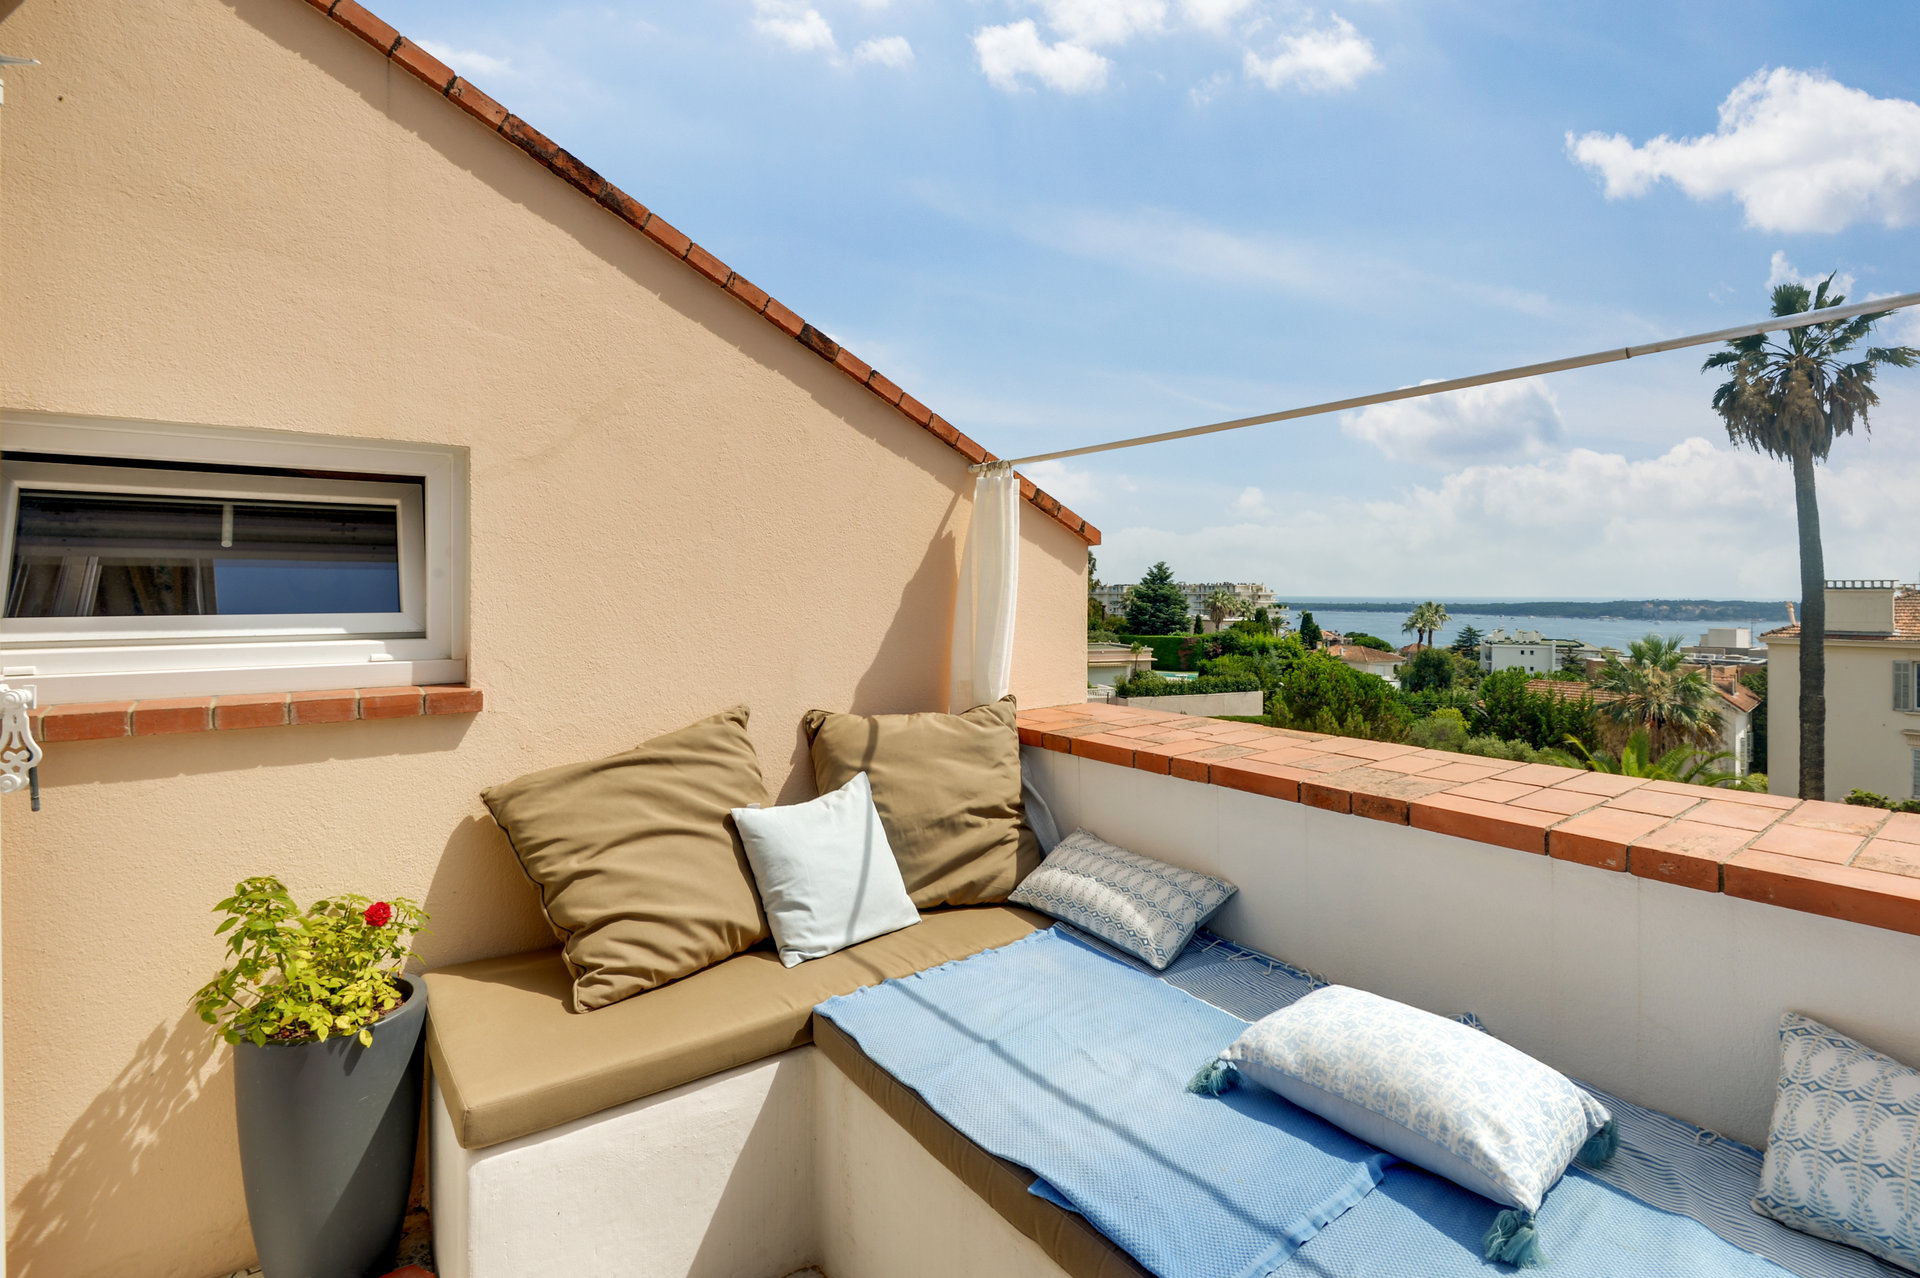 Cannes Californie - Exceptional location with exceptional view